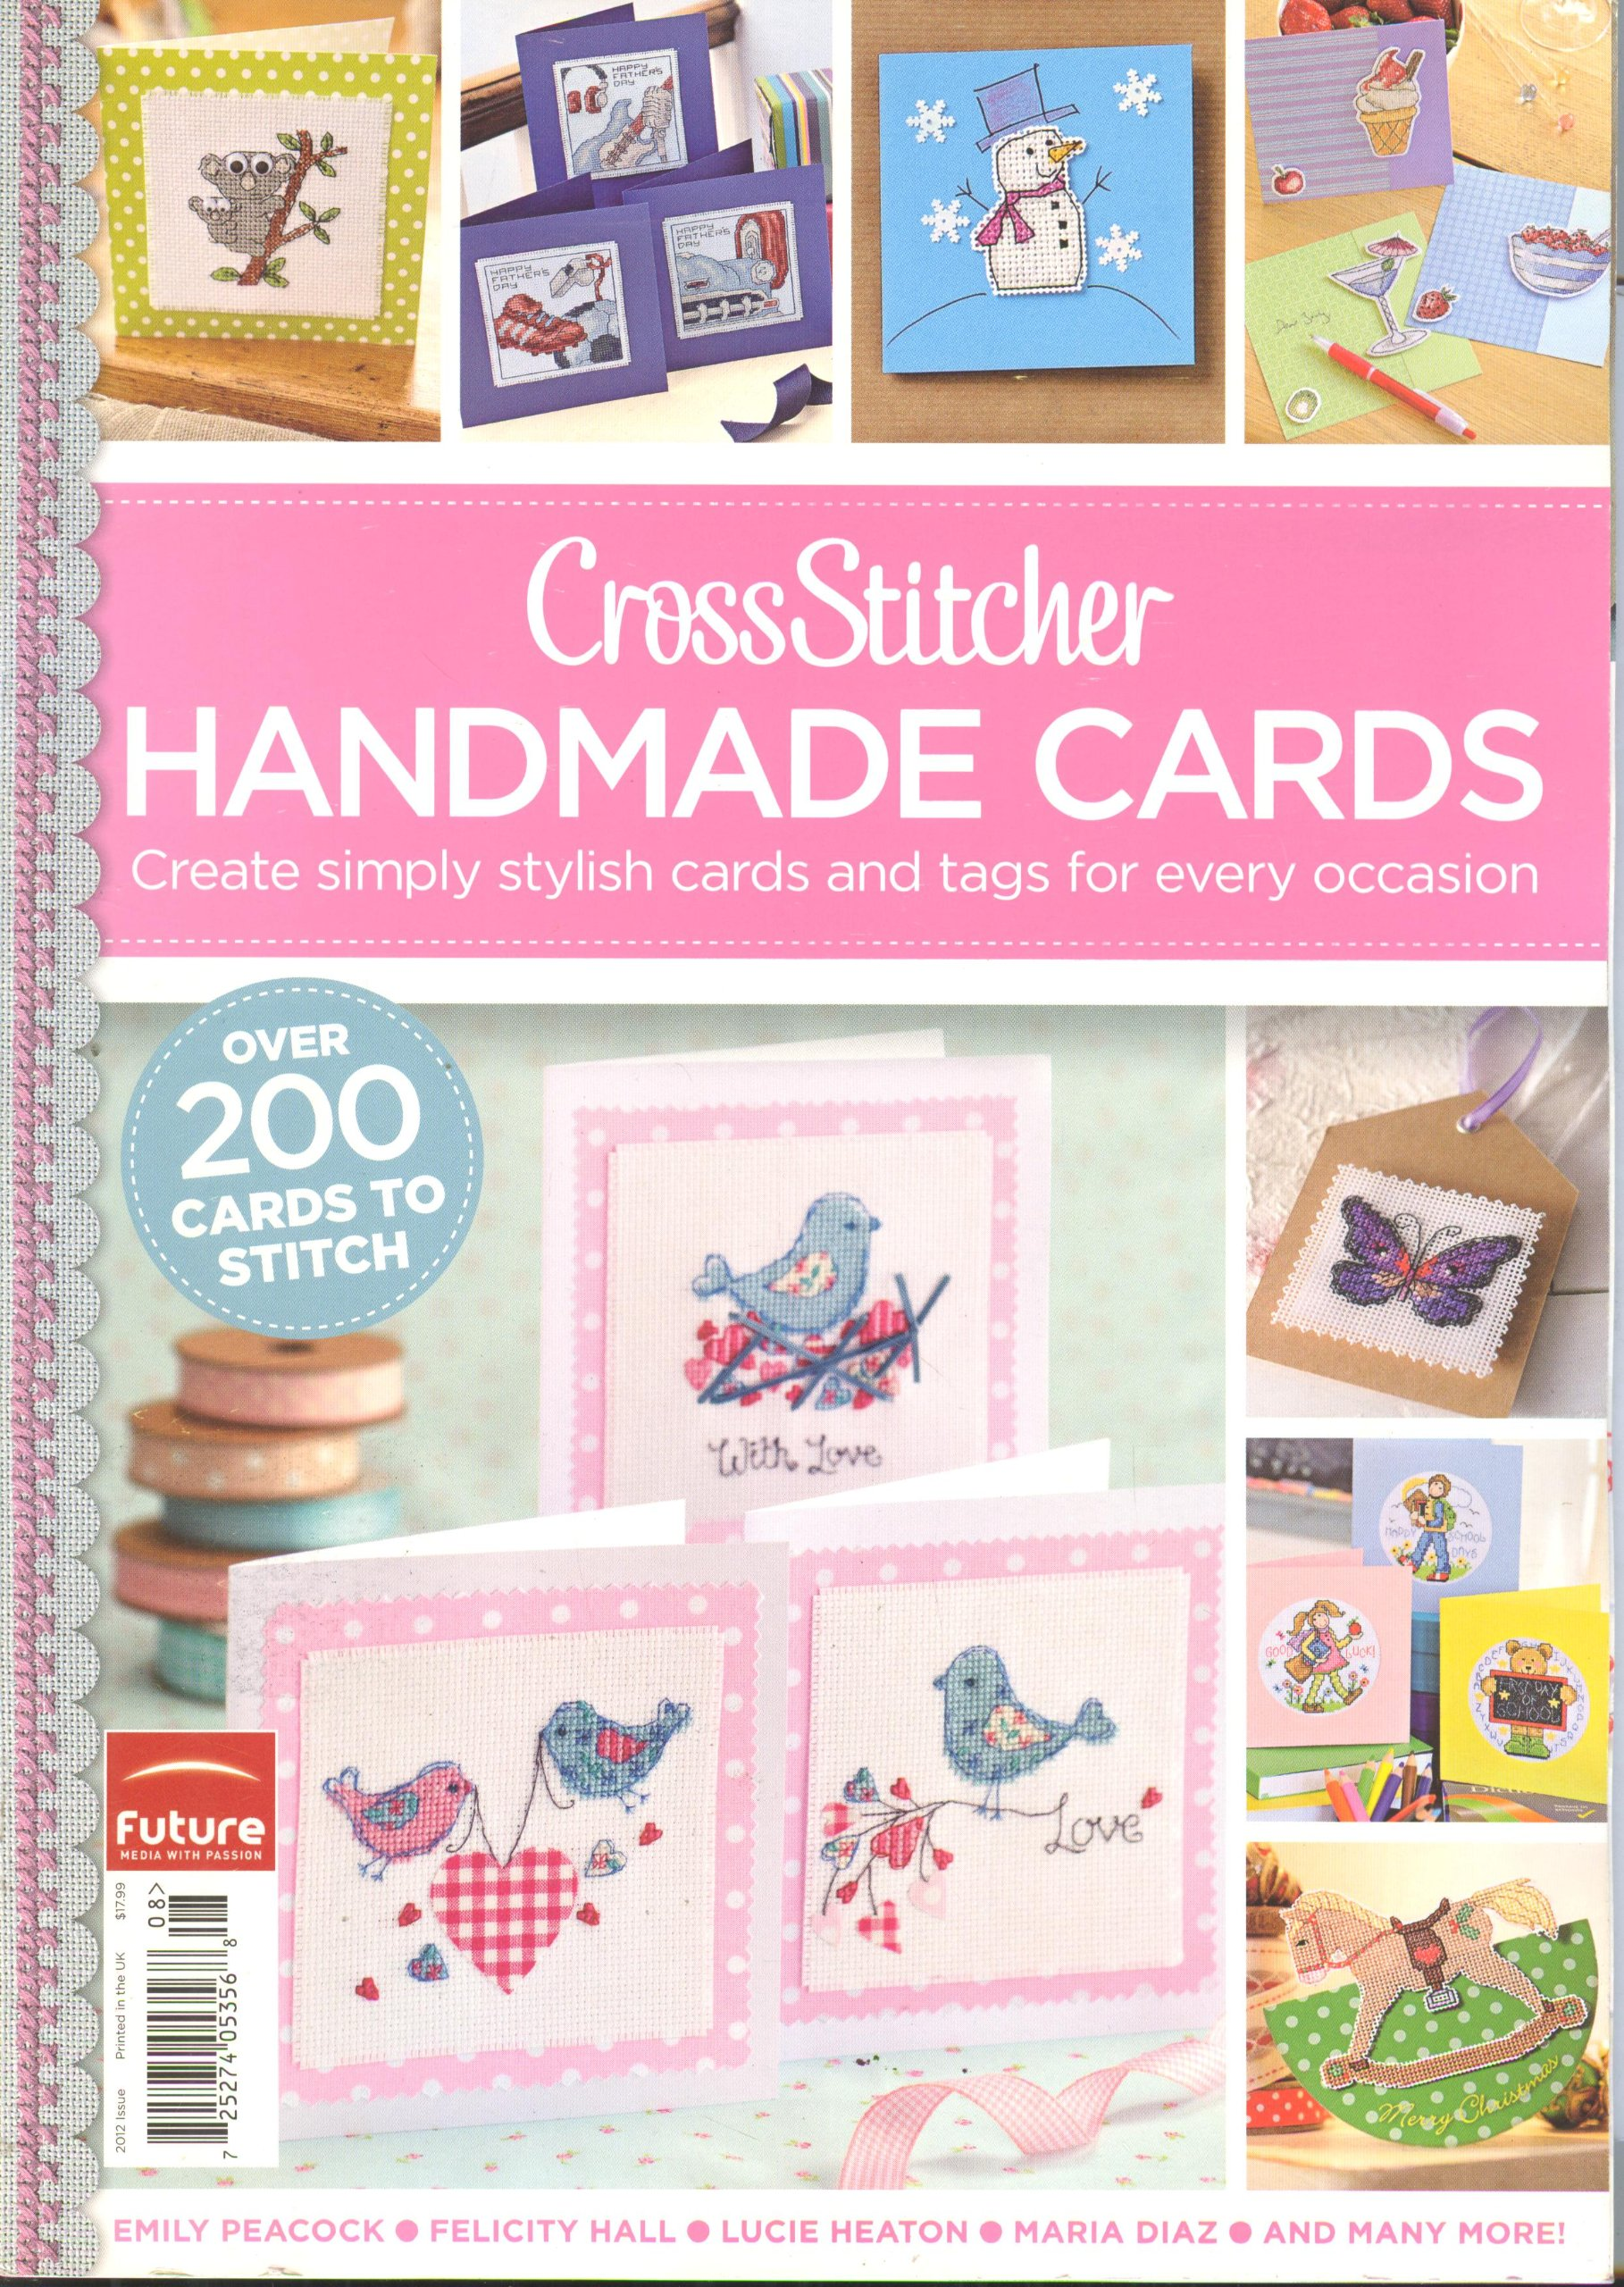 Download CrossStitcher Handmade Cards (2012) pdf